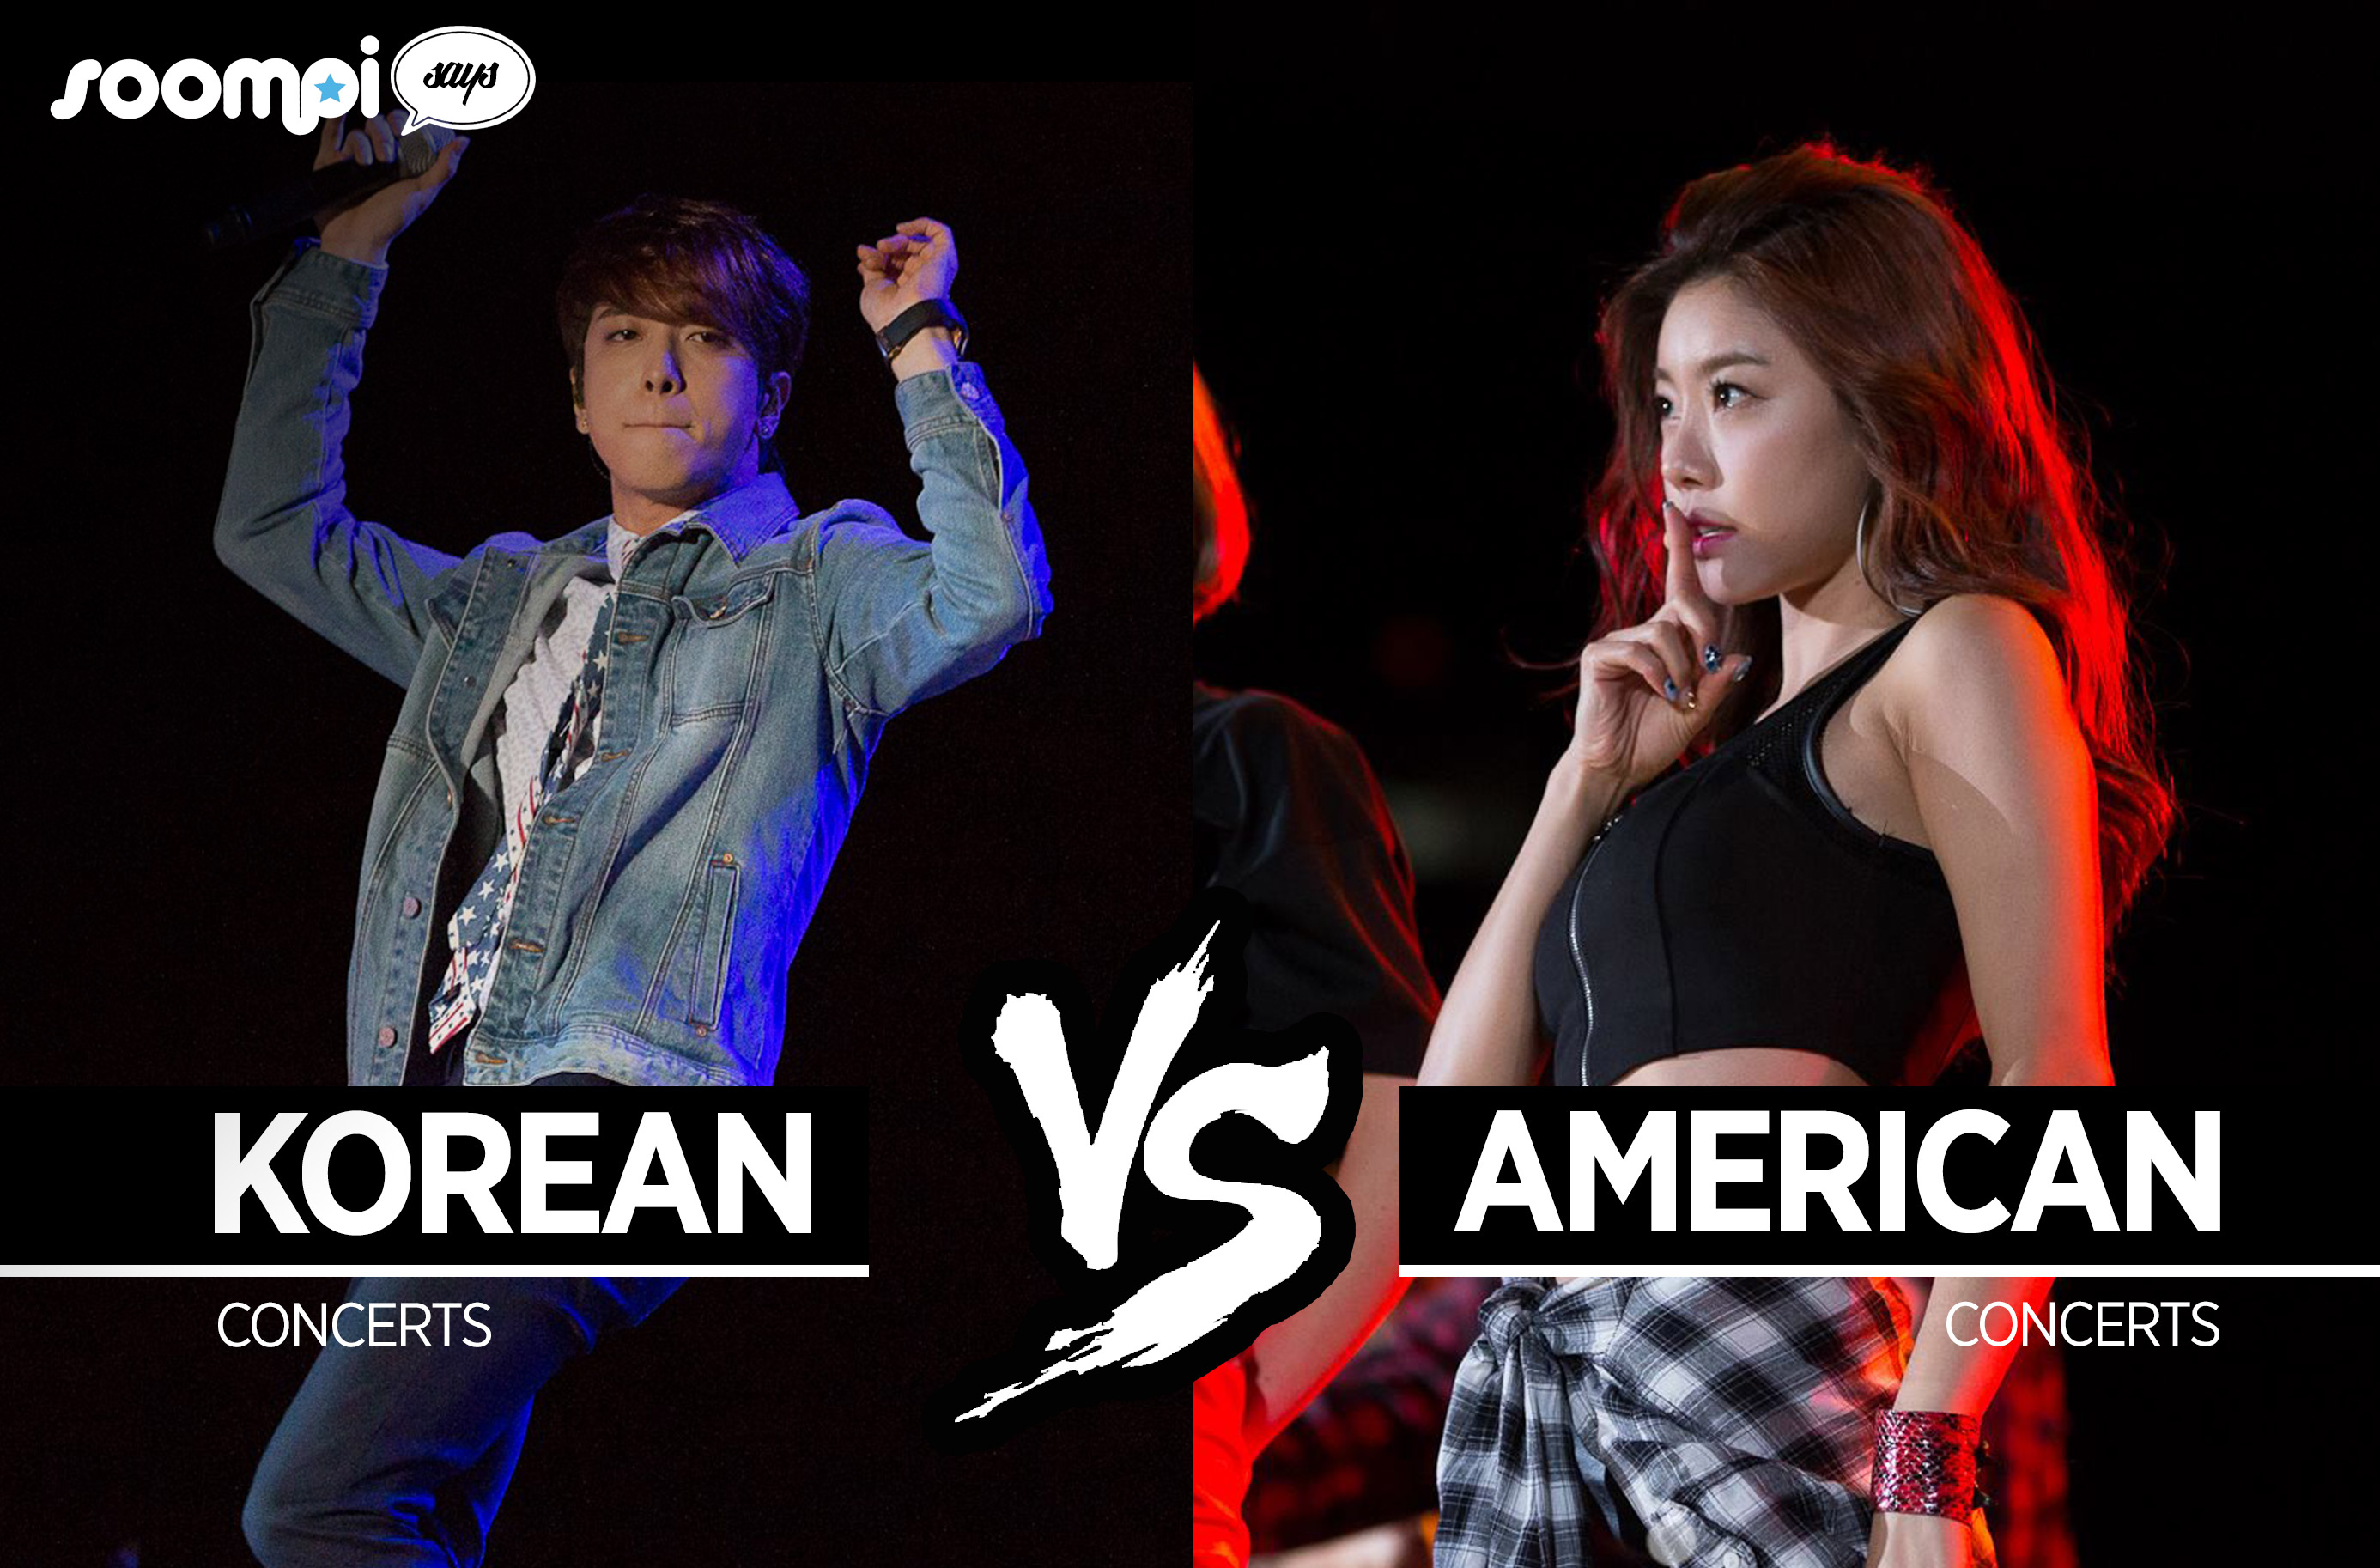 kpop versus american pop Let's explore the world: jpop vs kpop in this article,  because of its strong focus on mainstream pop, kpop often follows the trend in american music.